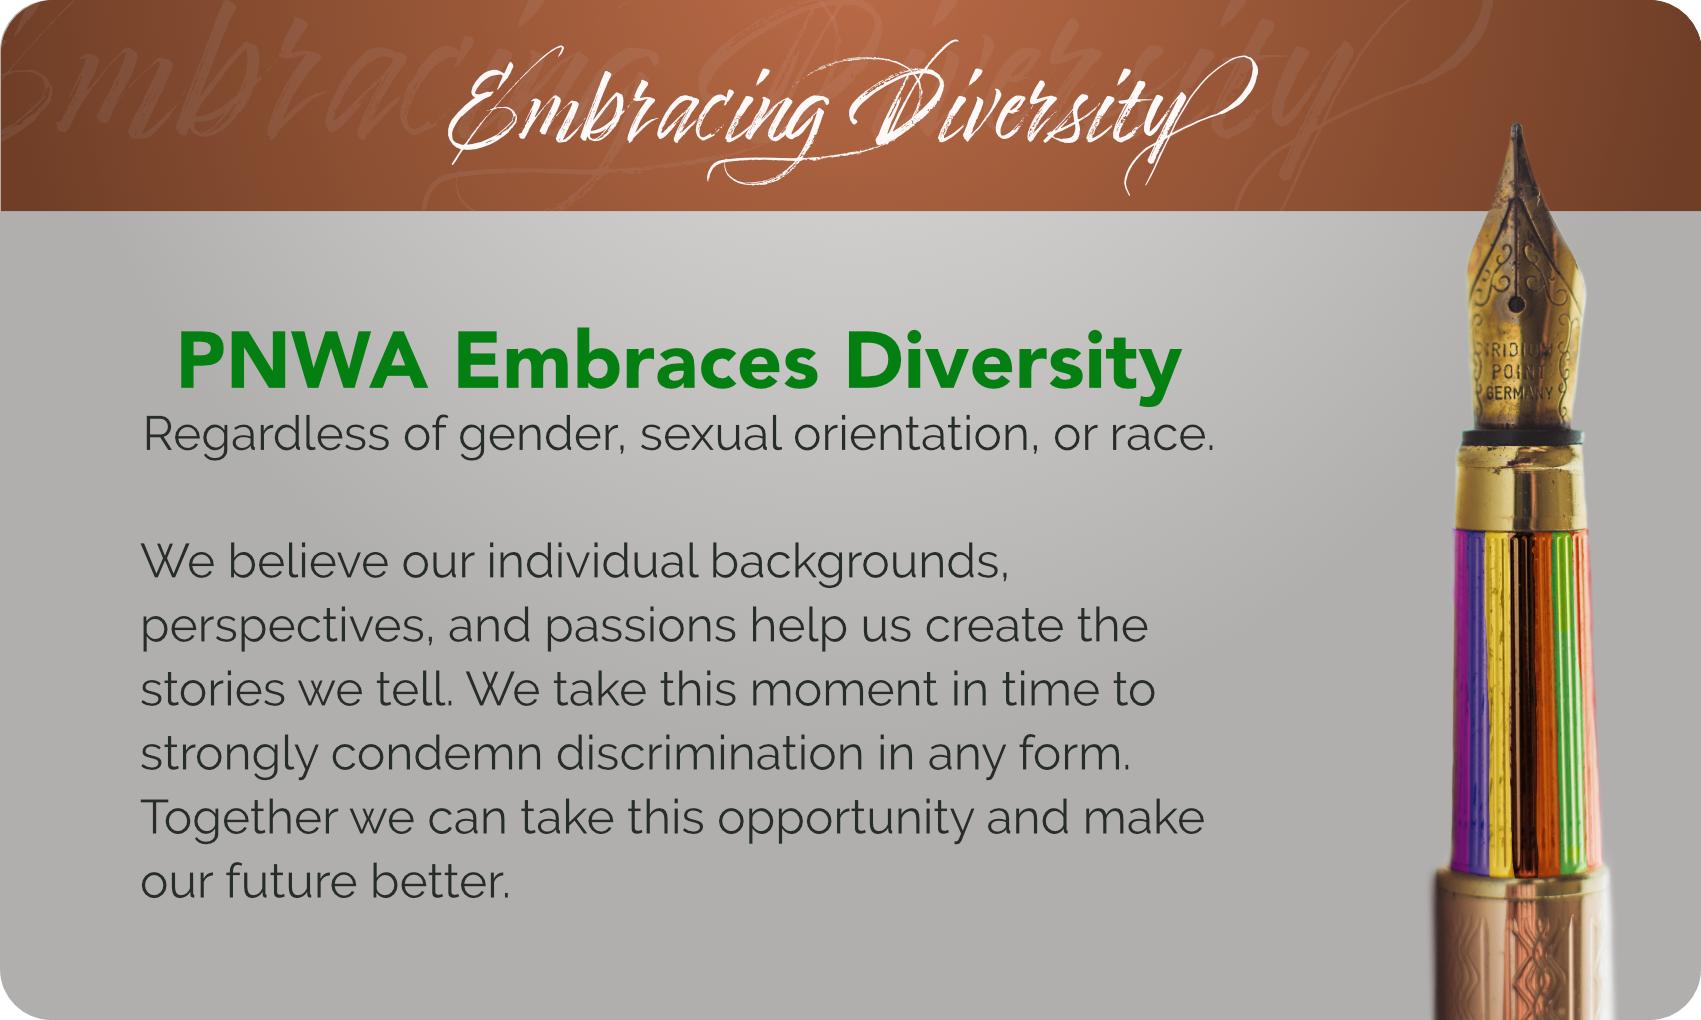 PNWA Embraces Diversity regardless of gender, sexual orientation, or race. We believe our individual backgrounds, perspectives, and passions help us create the stories we tell. We take this moment in time to strongly condemn discrimination in any form. Together, we can take this opportunity and make our future better.